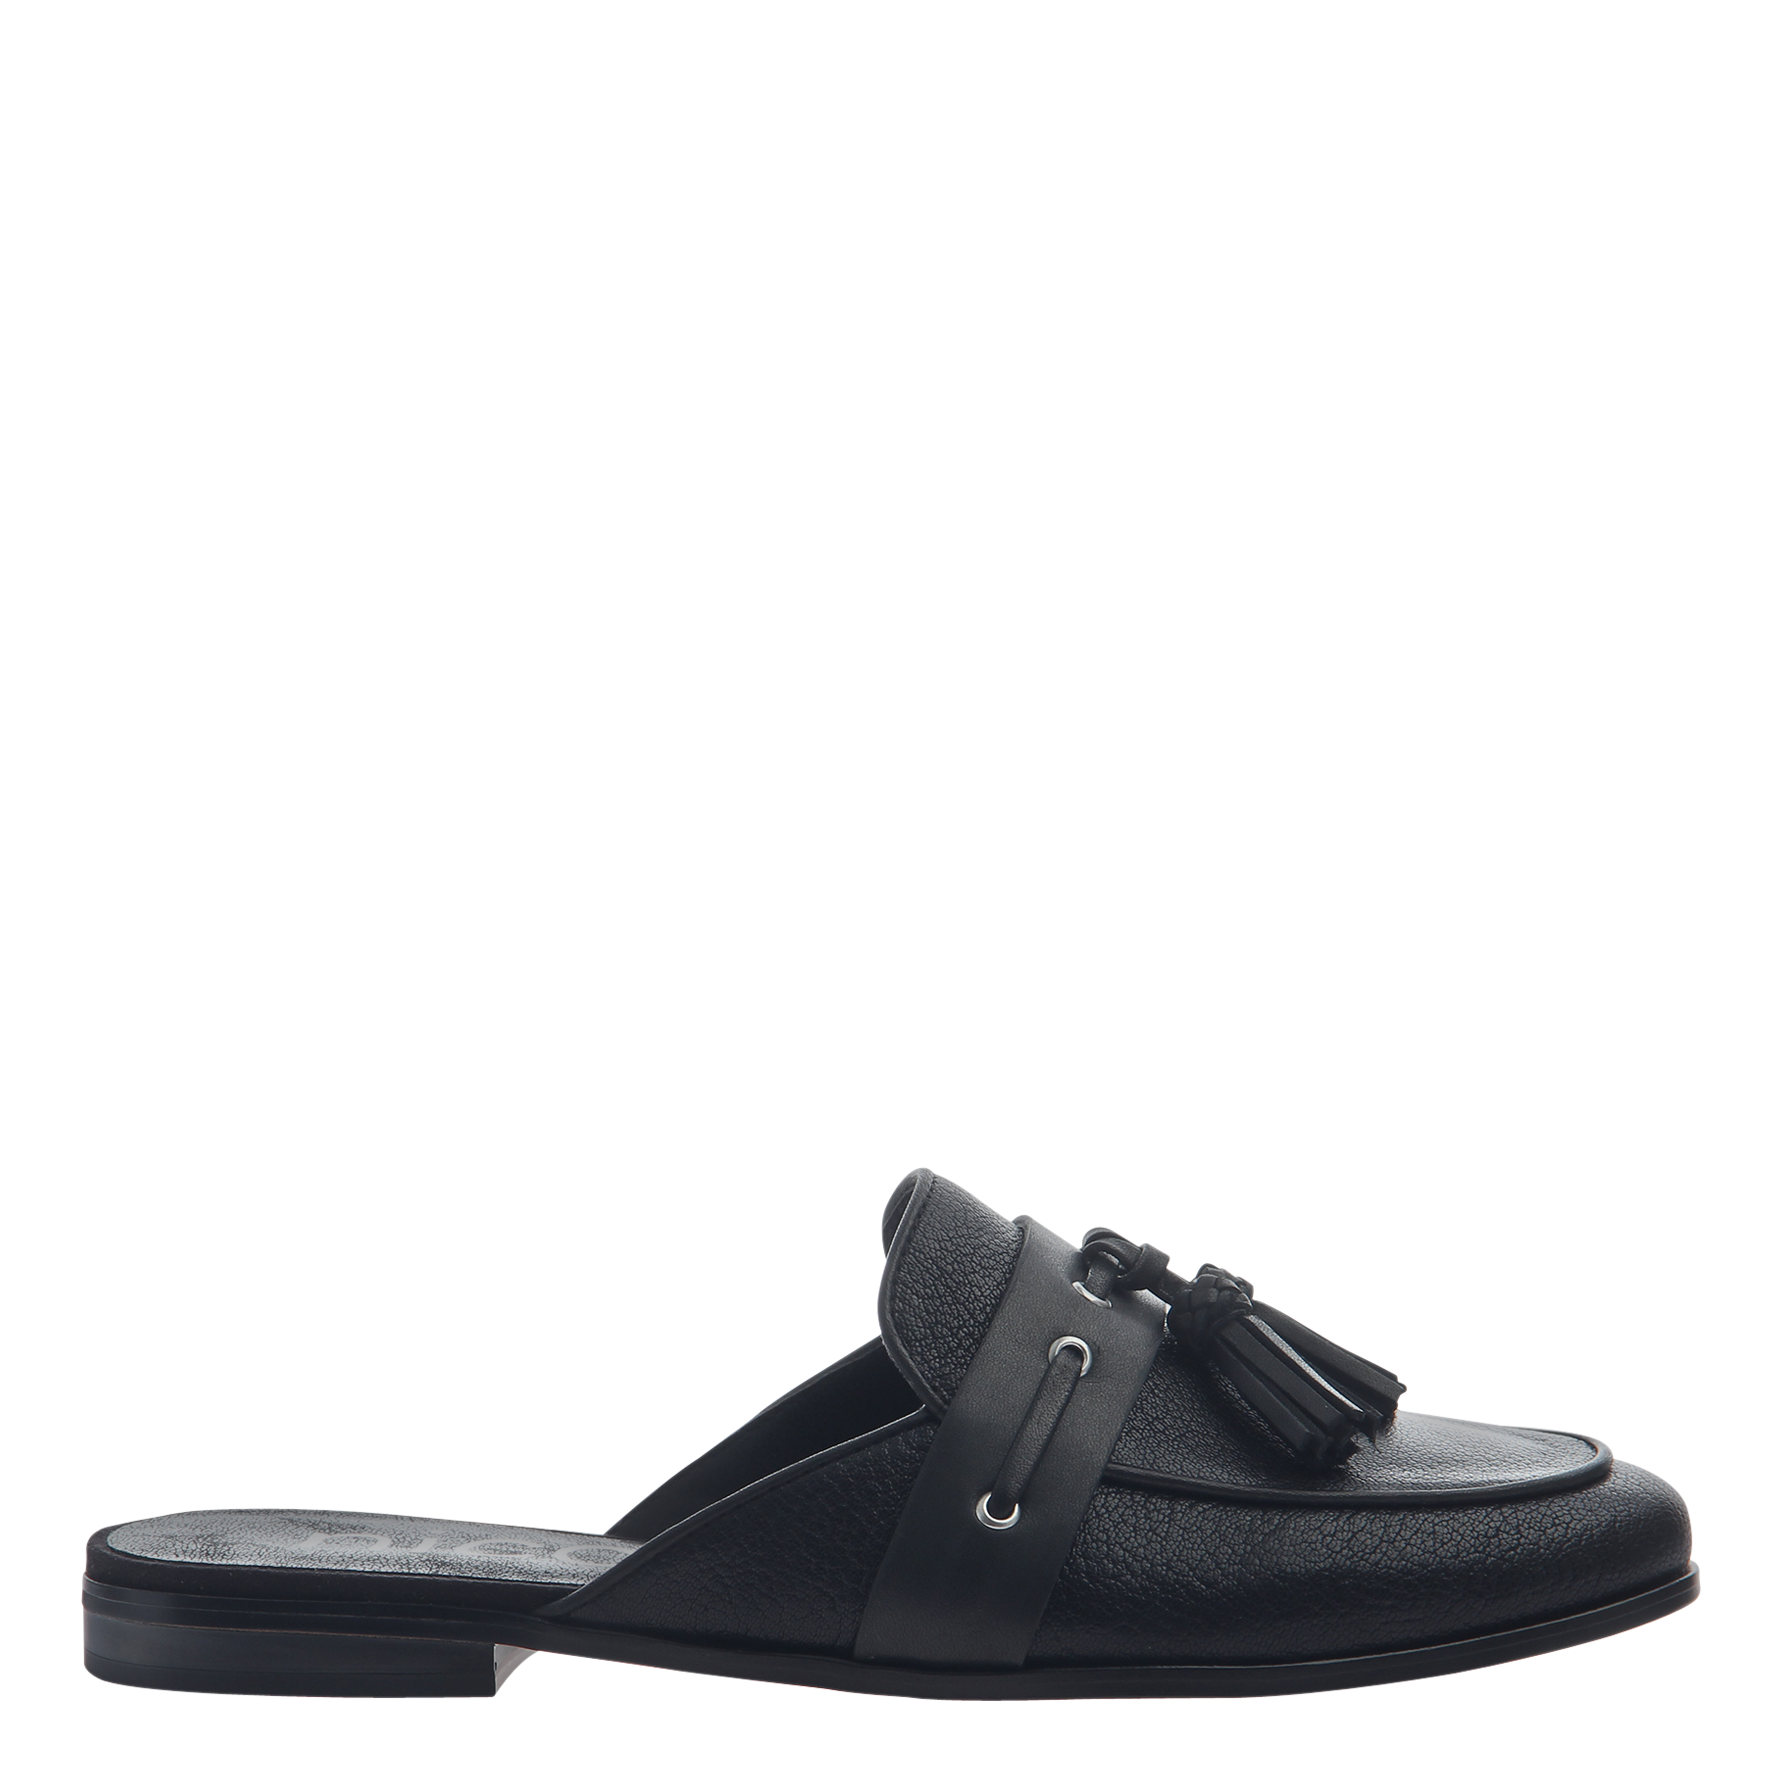 Womens slip on loafer Yulia in black side view